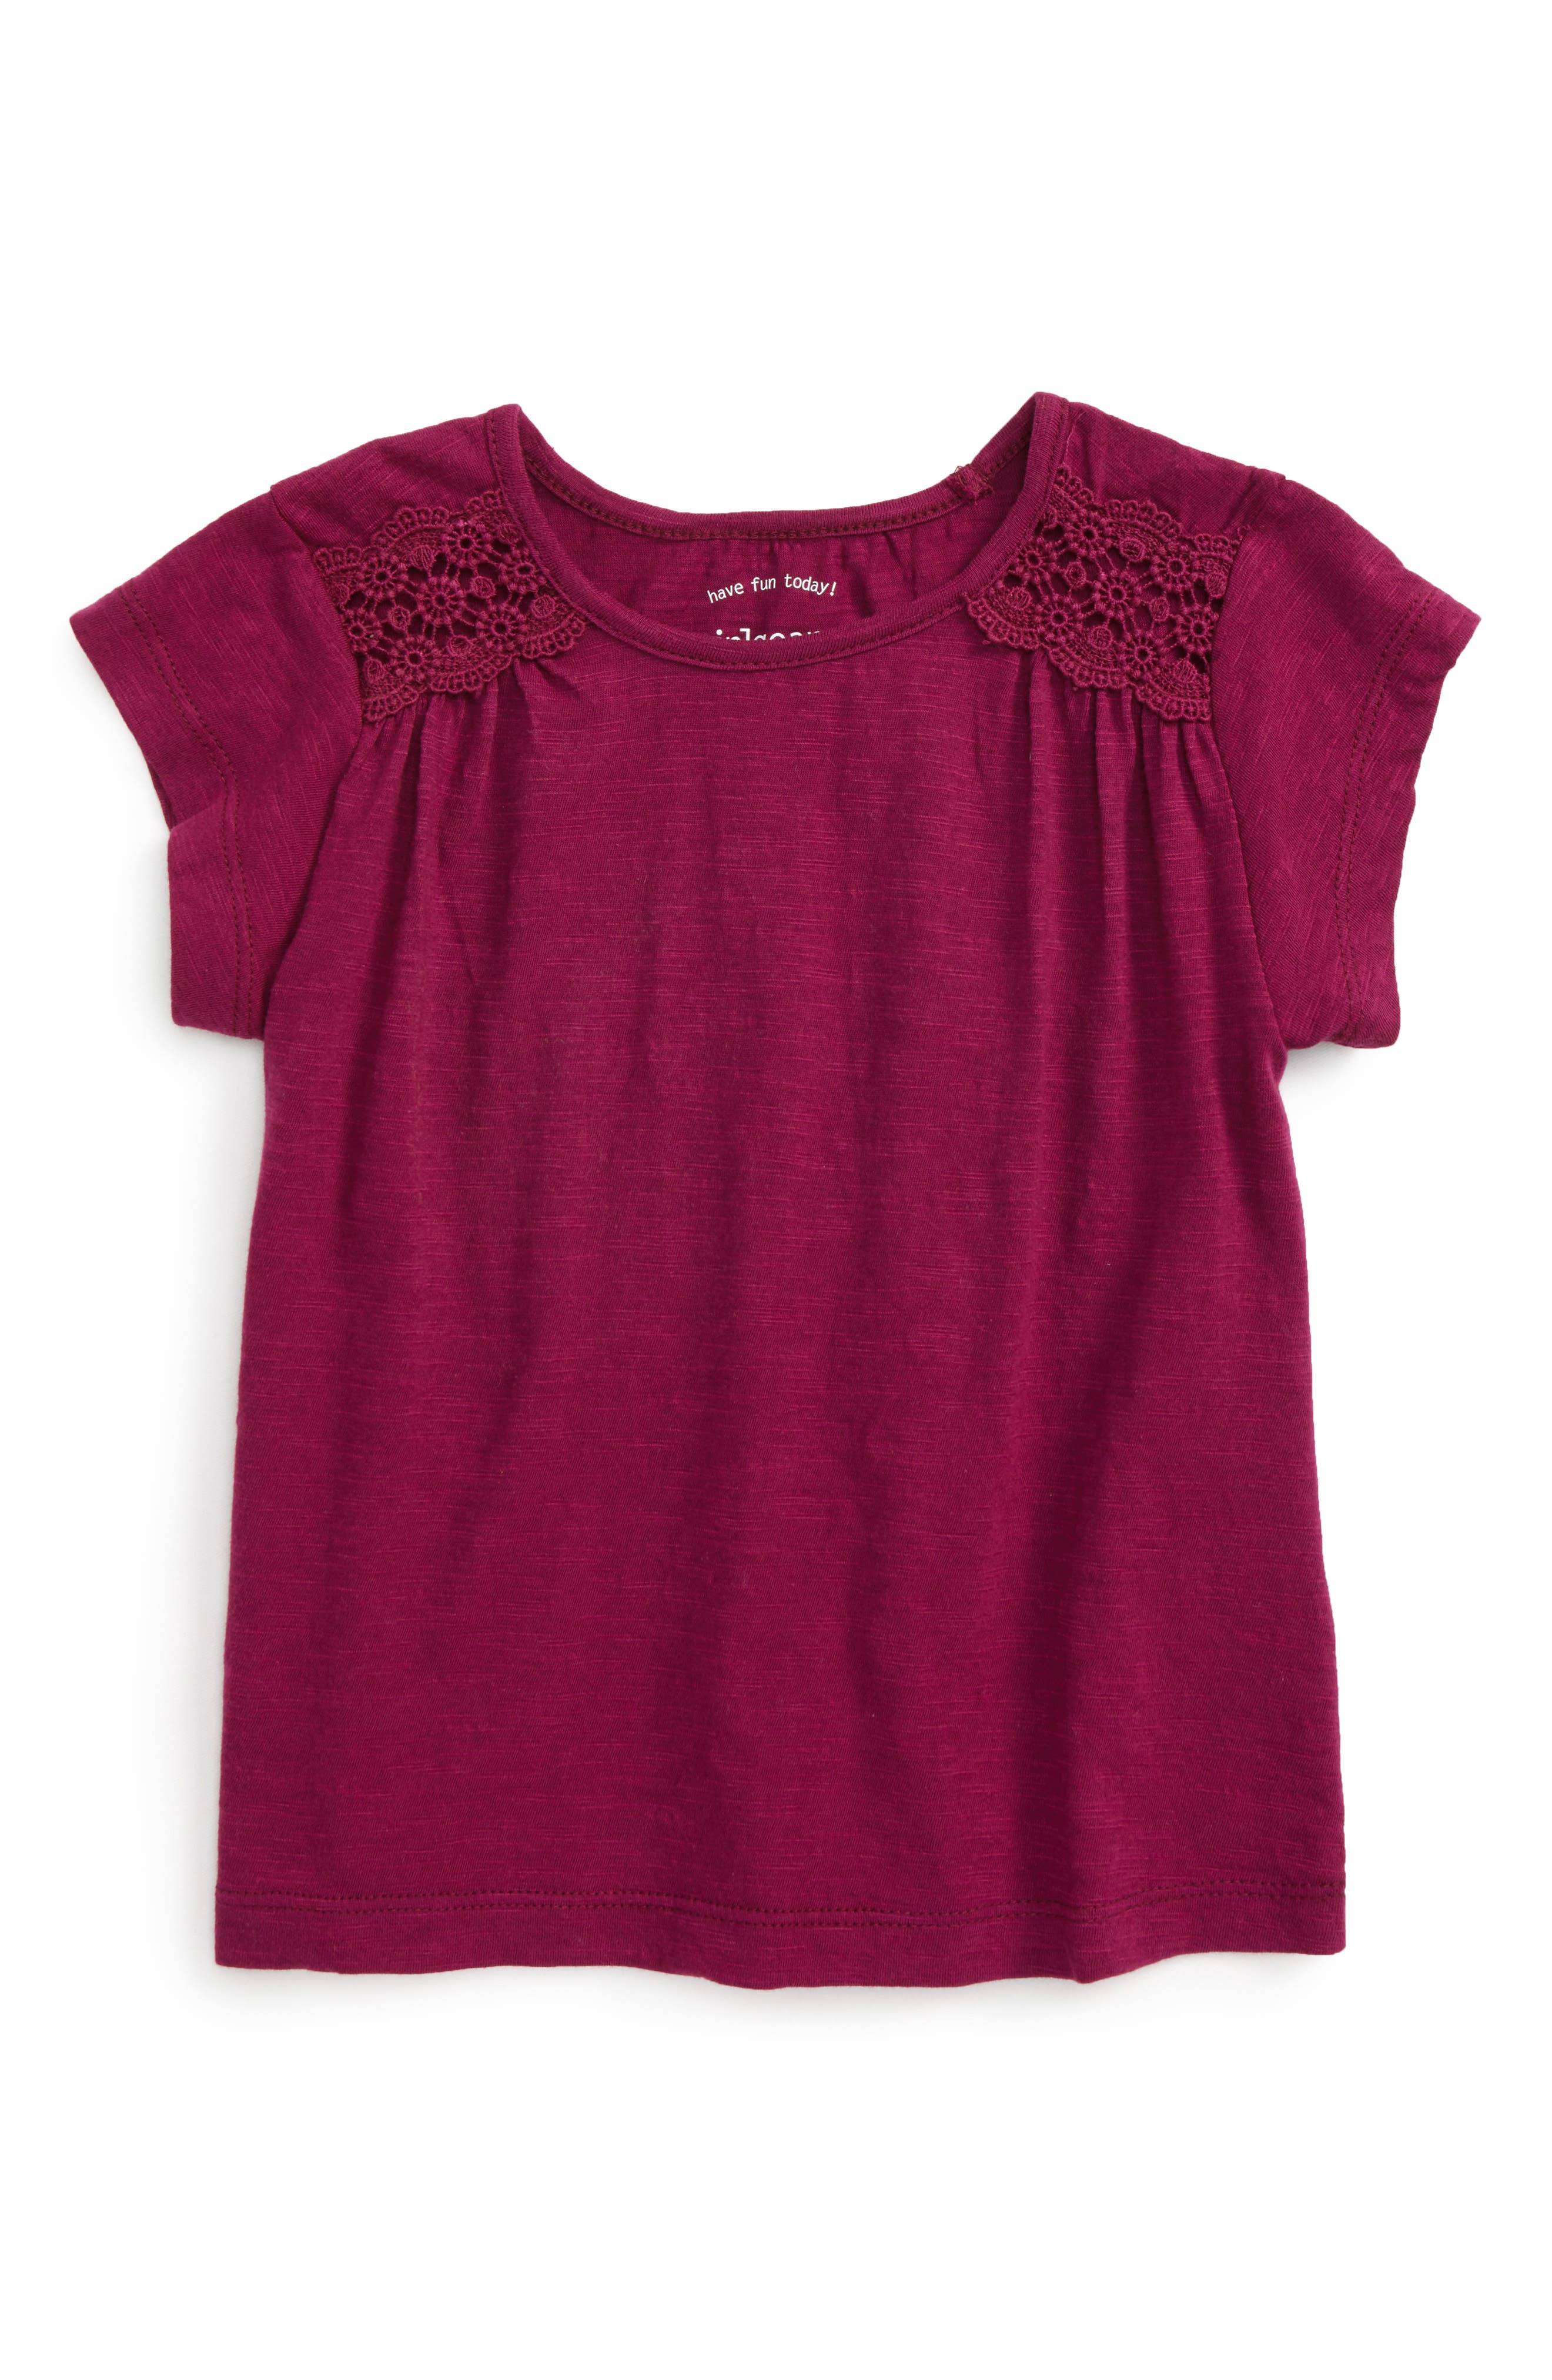 Peek Lisa Cotton Tee (Toddler Girls, Little Girls & Big Girls)